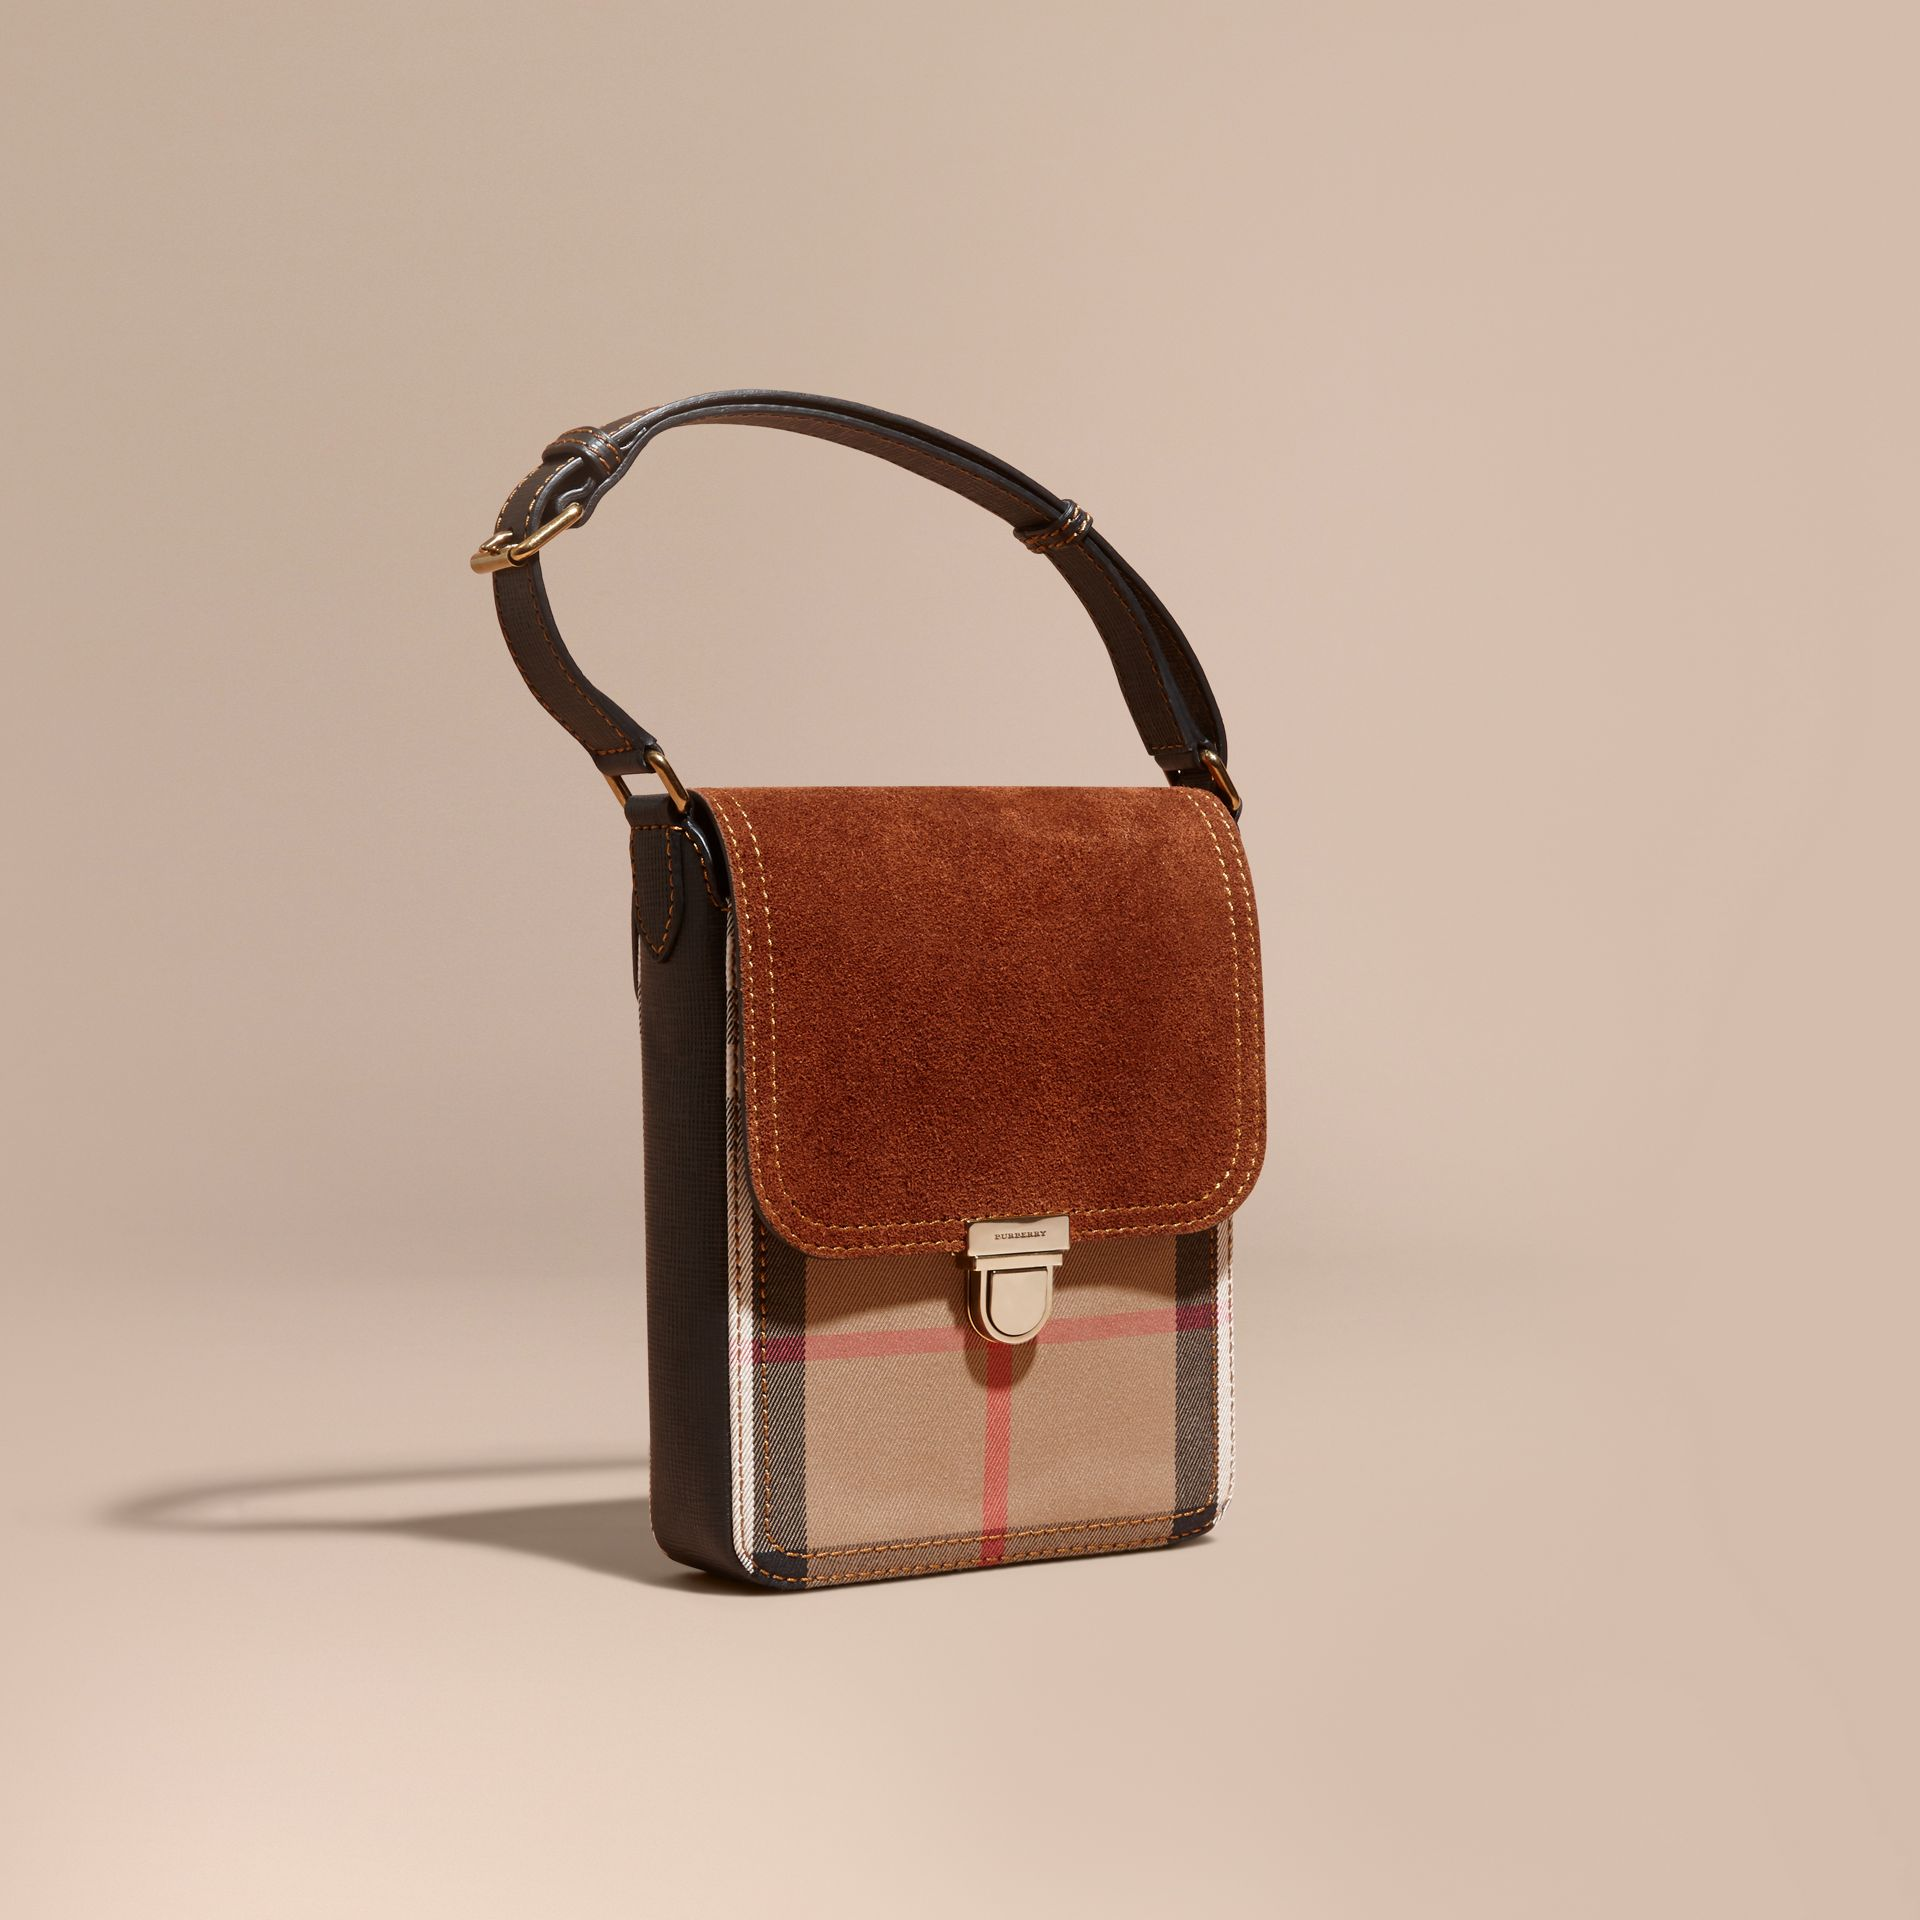 Russet brown The Small Satchel in English Suede and House Check Russet Brown - gallery image 1